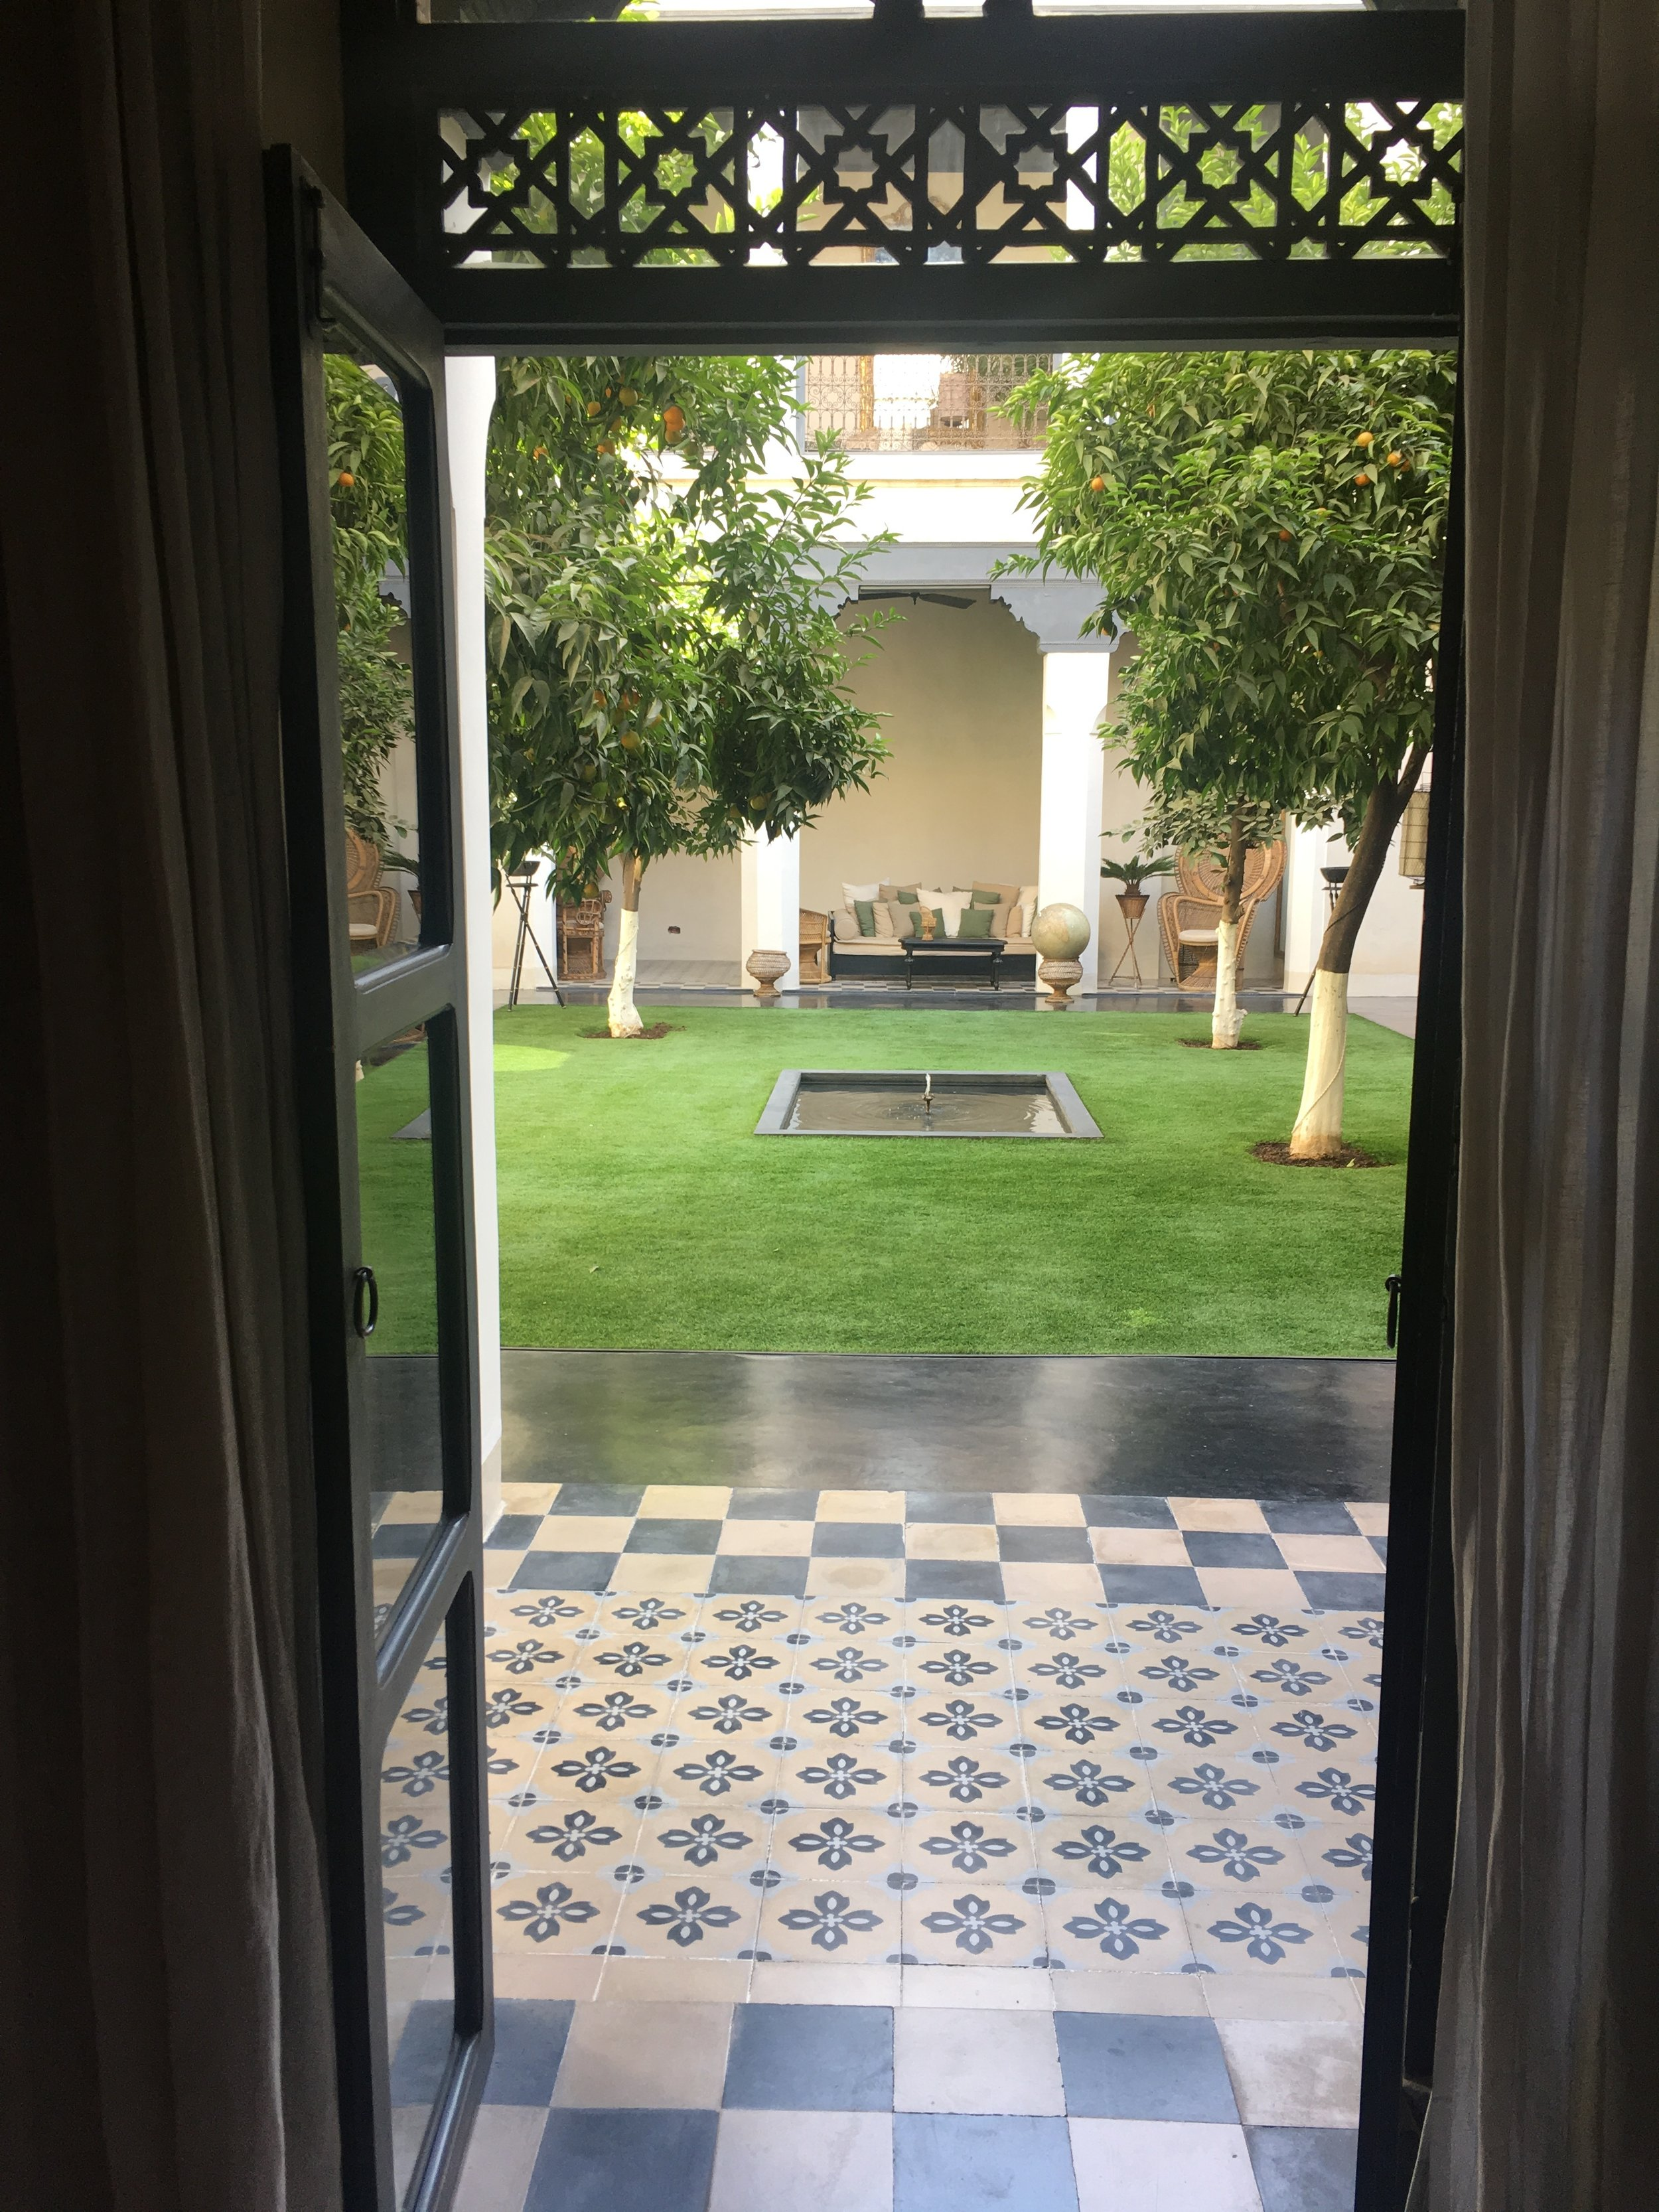 One of the courtyards at Riad de Tarabel.